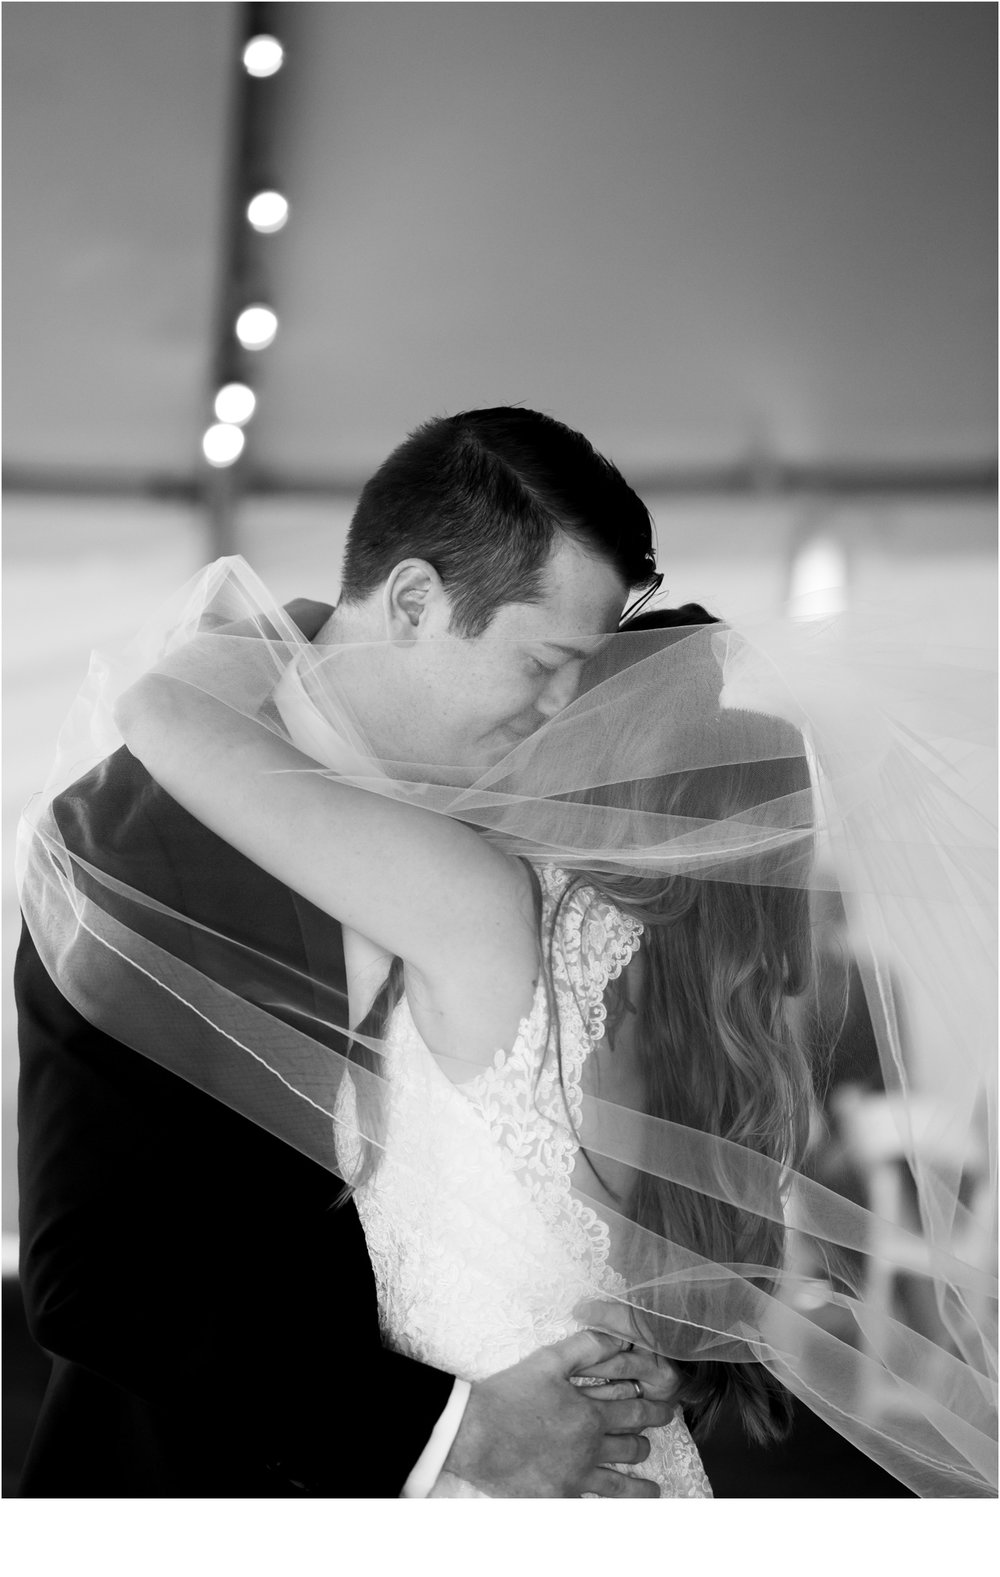 Rainey_Gregg_Photography_St._Simons_Island_Georgia_California_Wedding_Portrait_Photography_0880.jpg